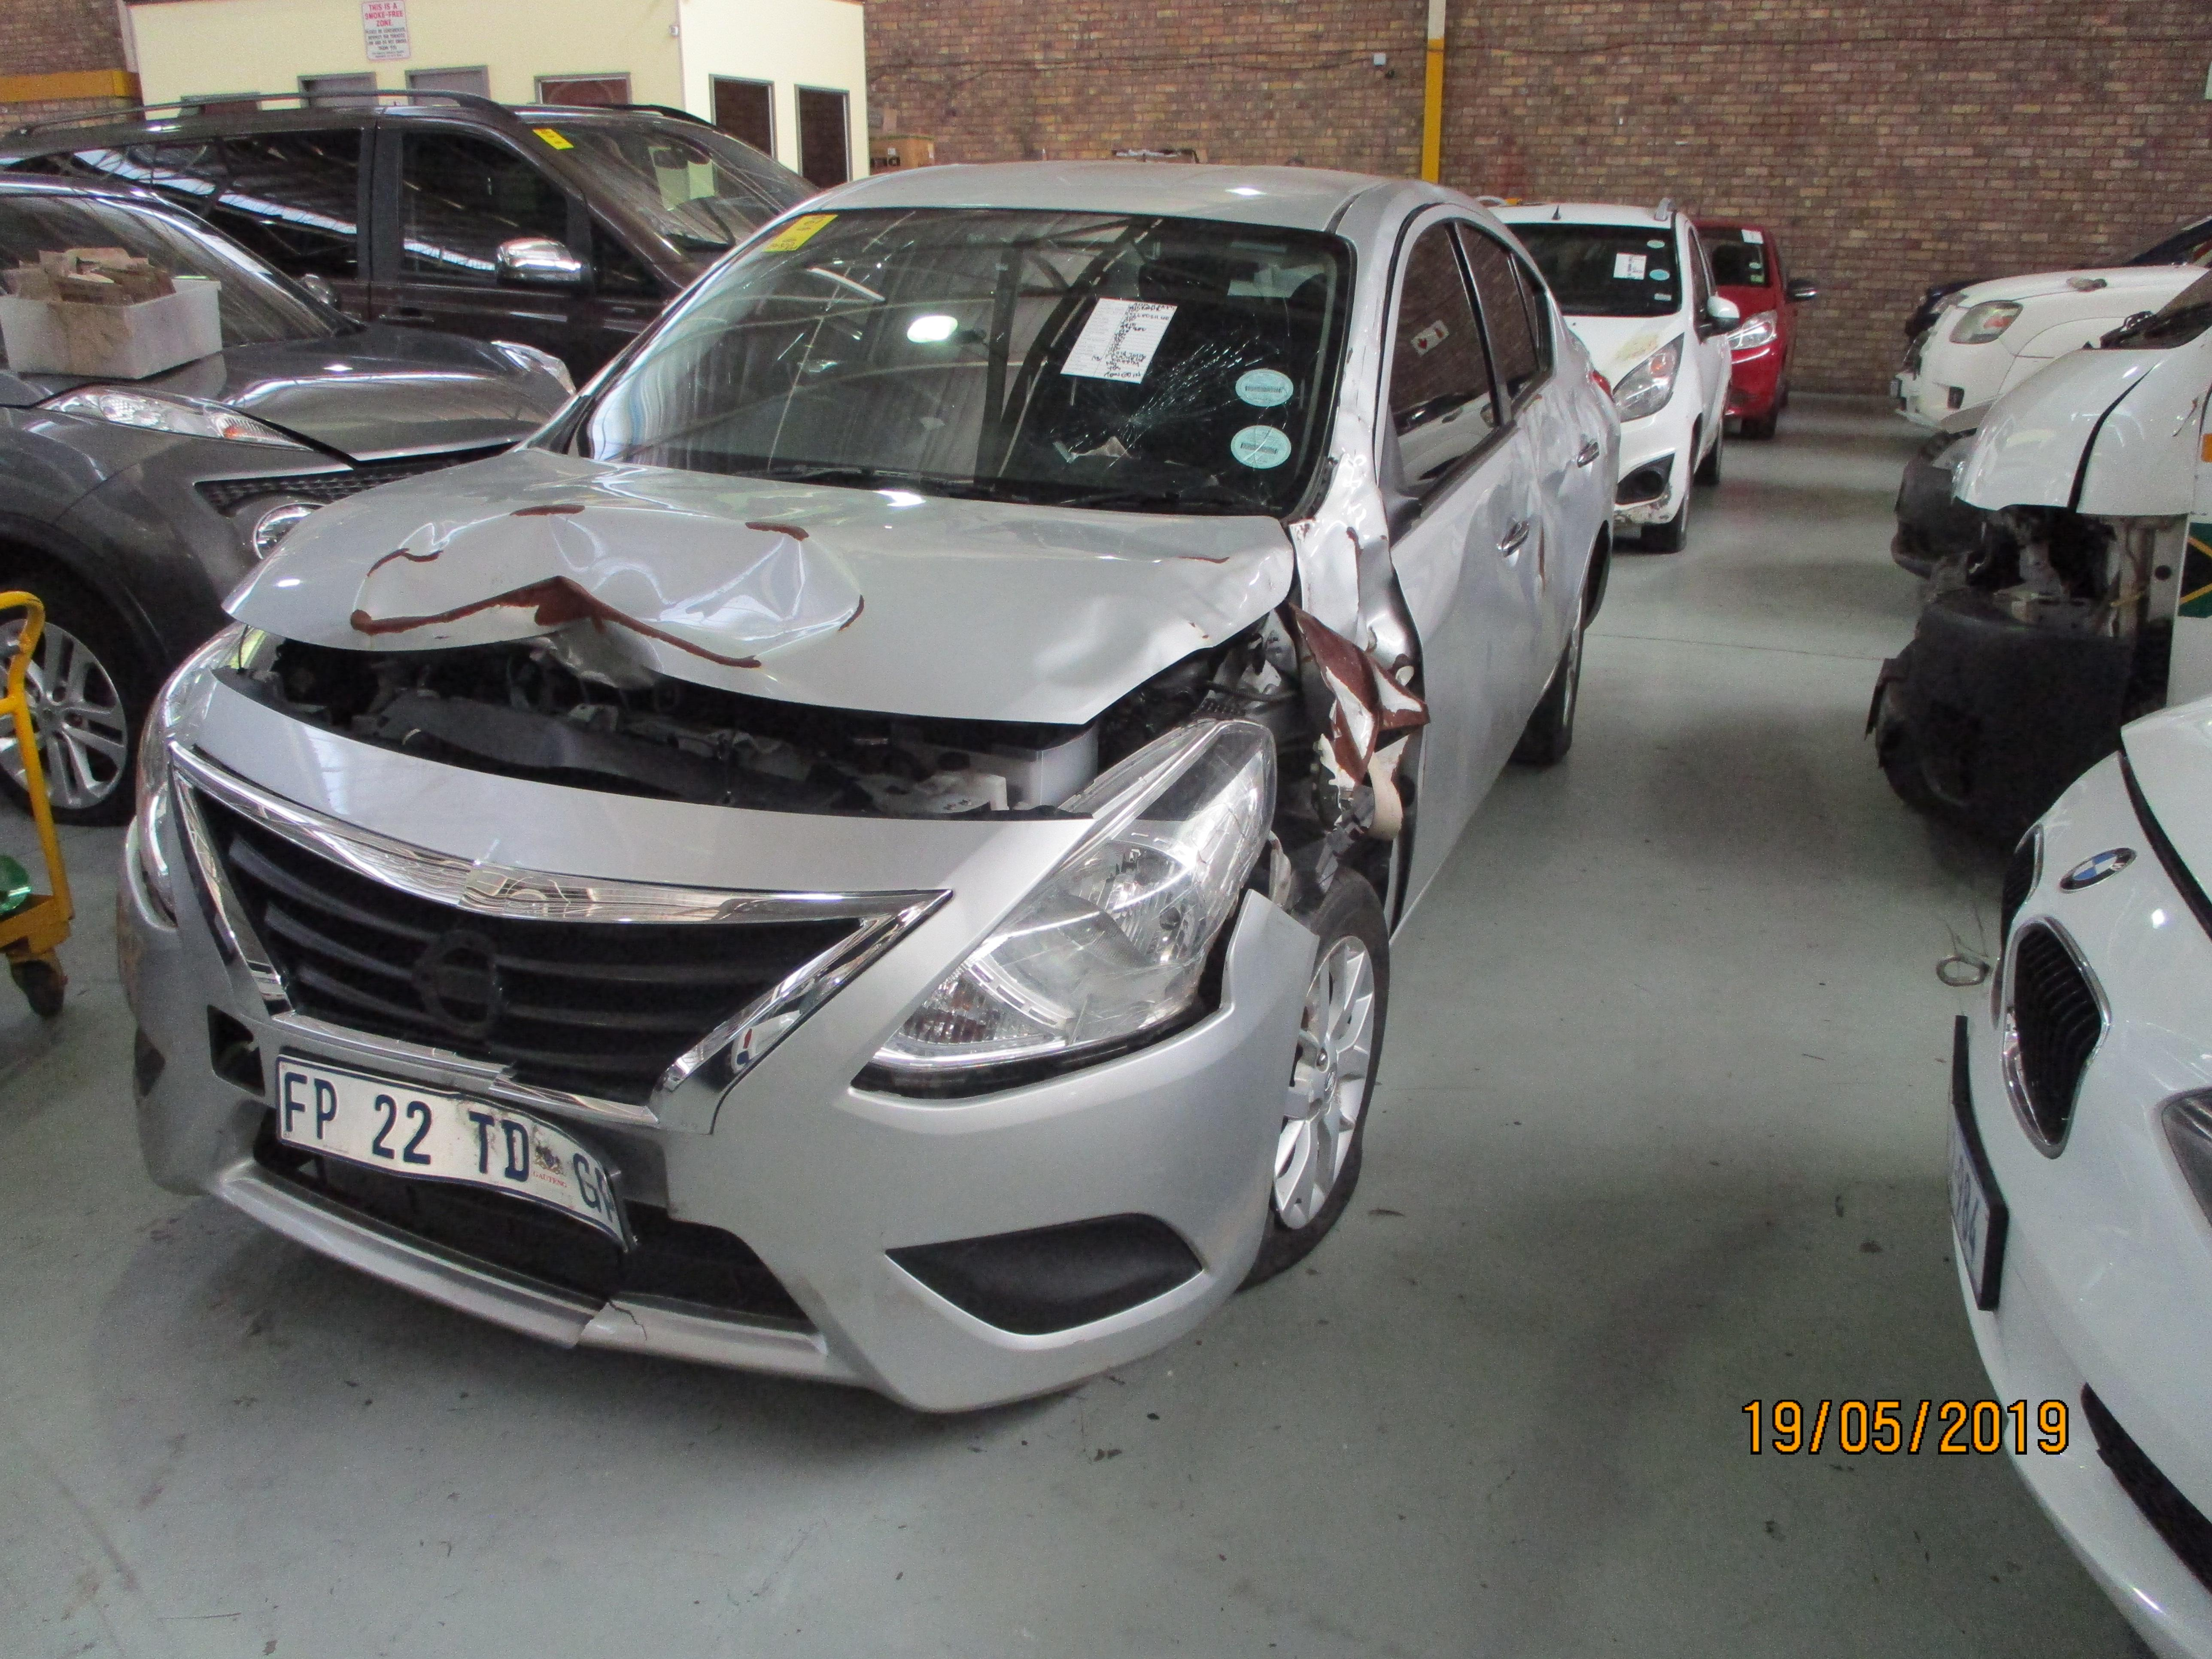 (ODO: 54802) (COLOUR: SILVER) (Accident Damaged)